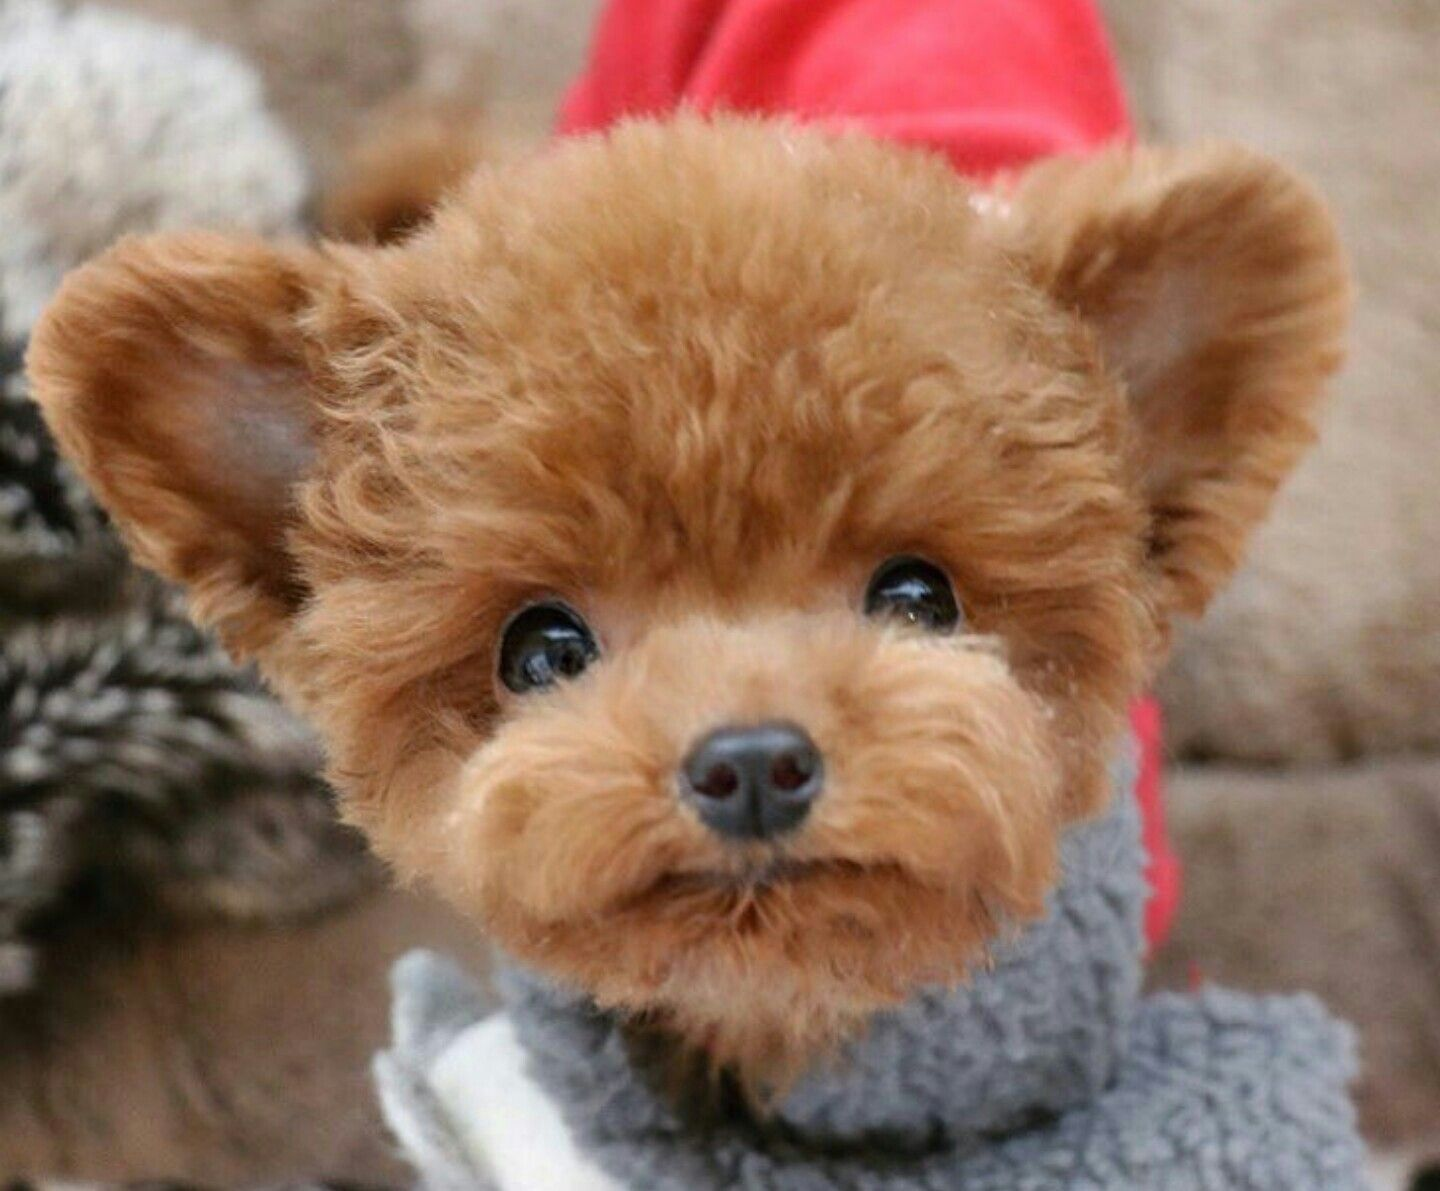 Adorable toy poodle toy poodle puppies cute animals